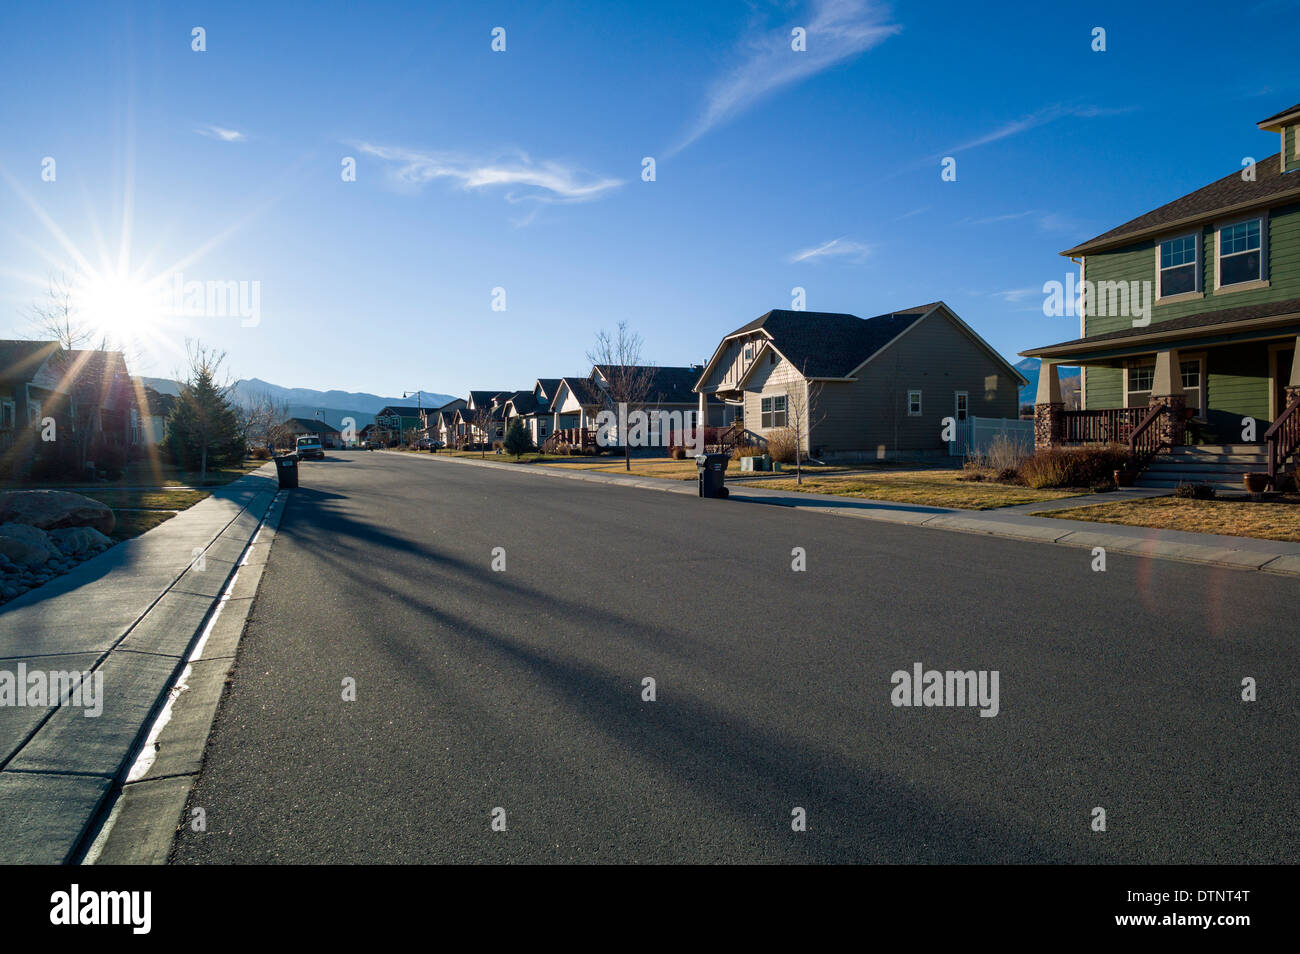 Sunset view from residential neighborhood in Salida, Colorado, USA - Stock Image